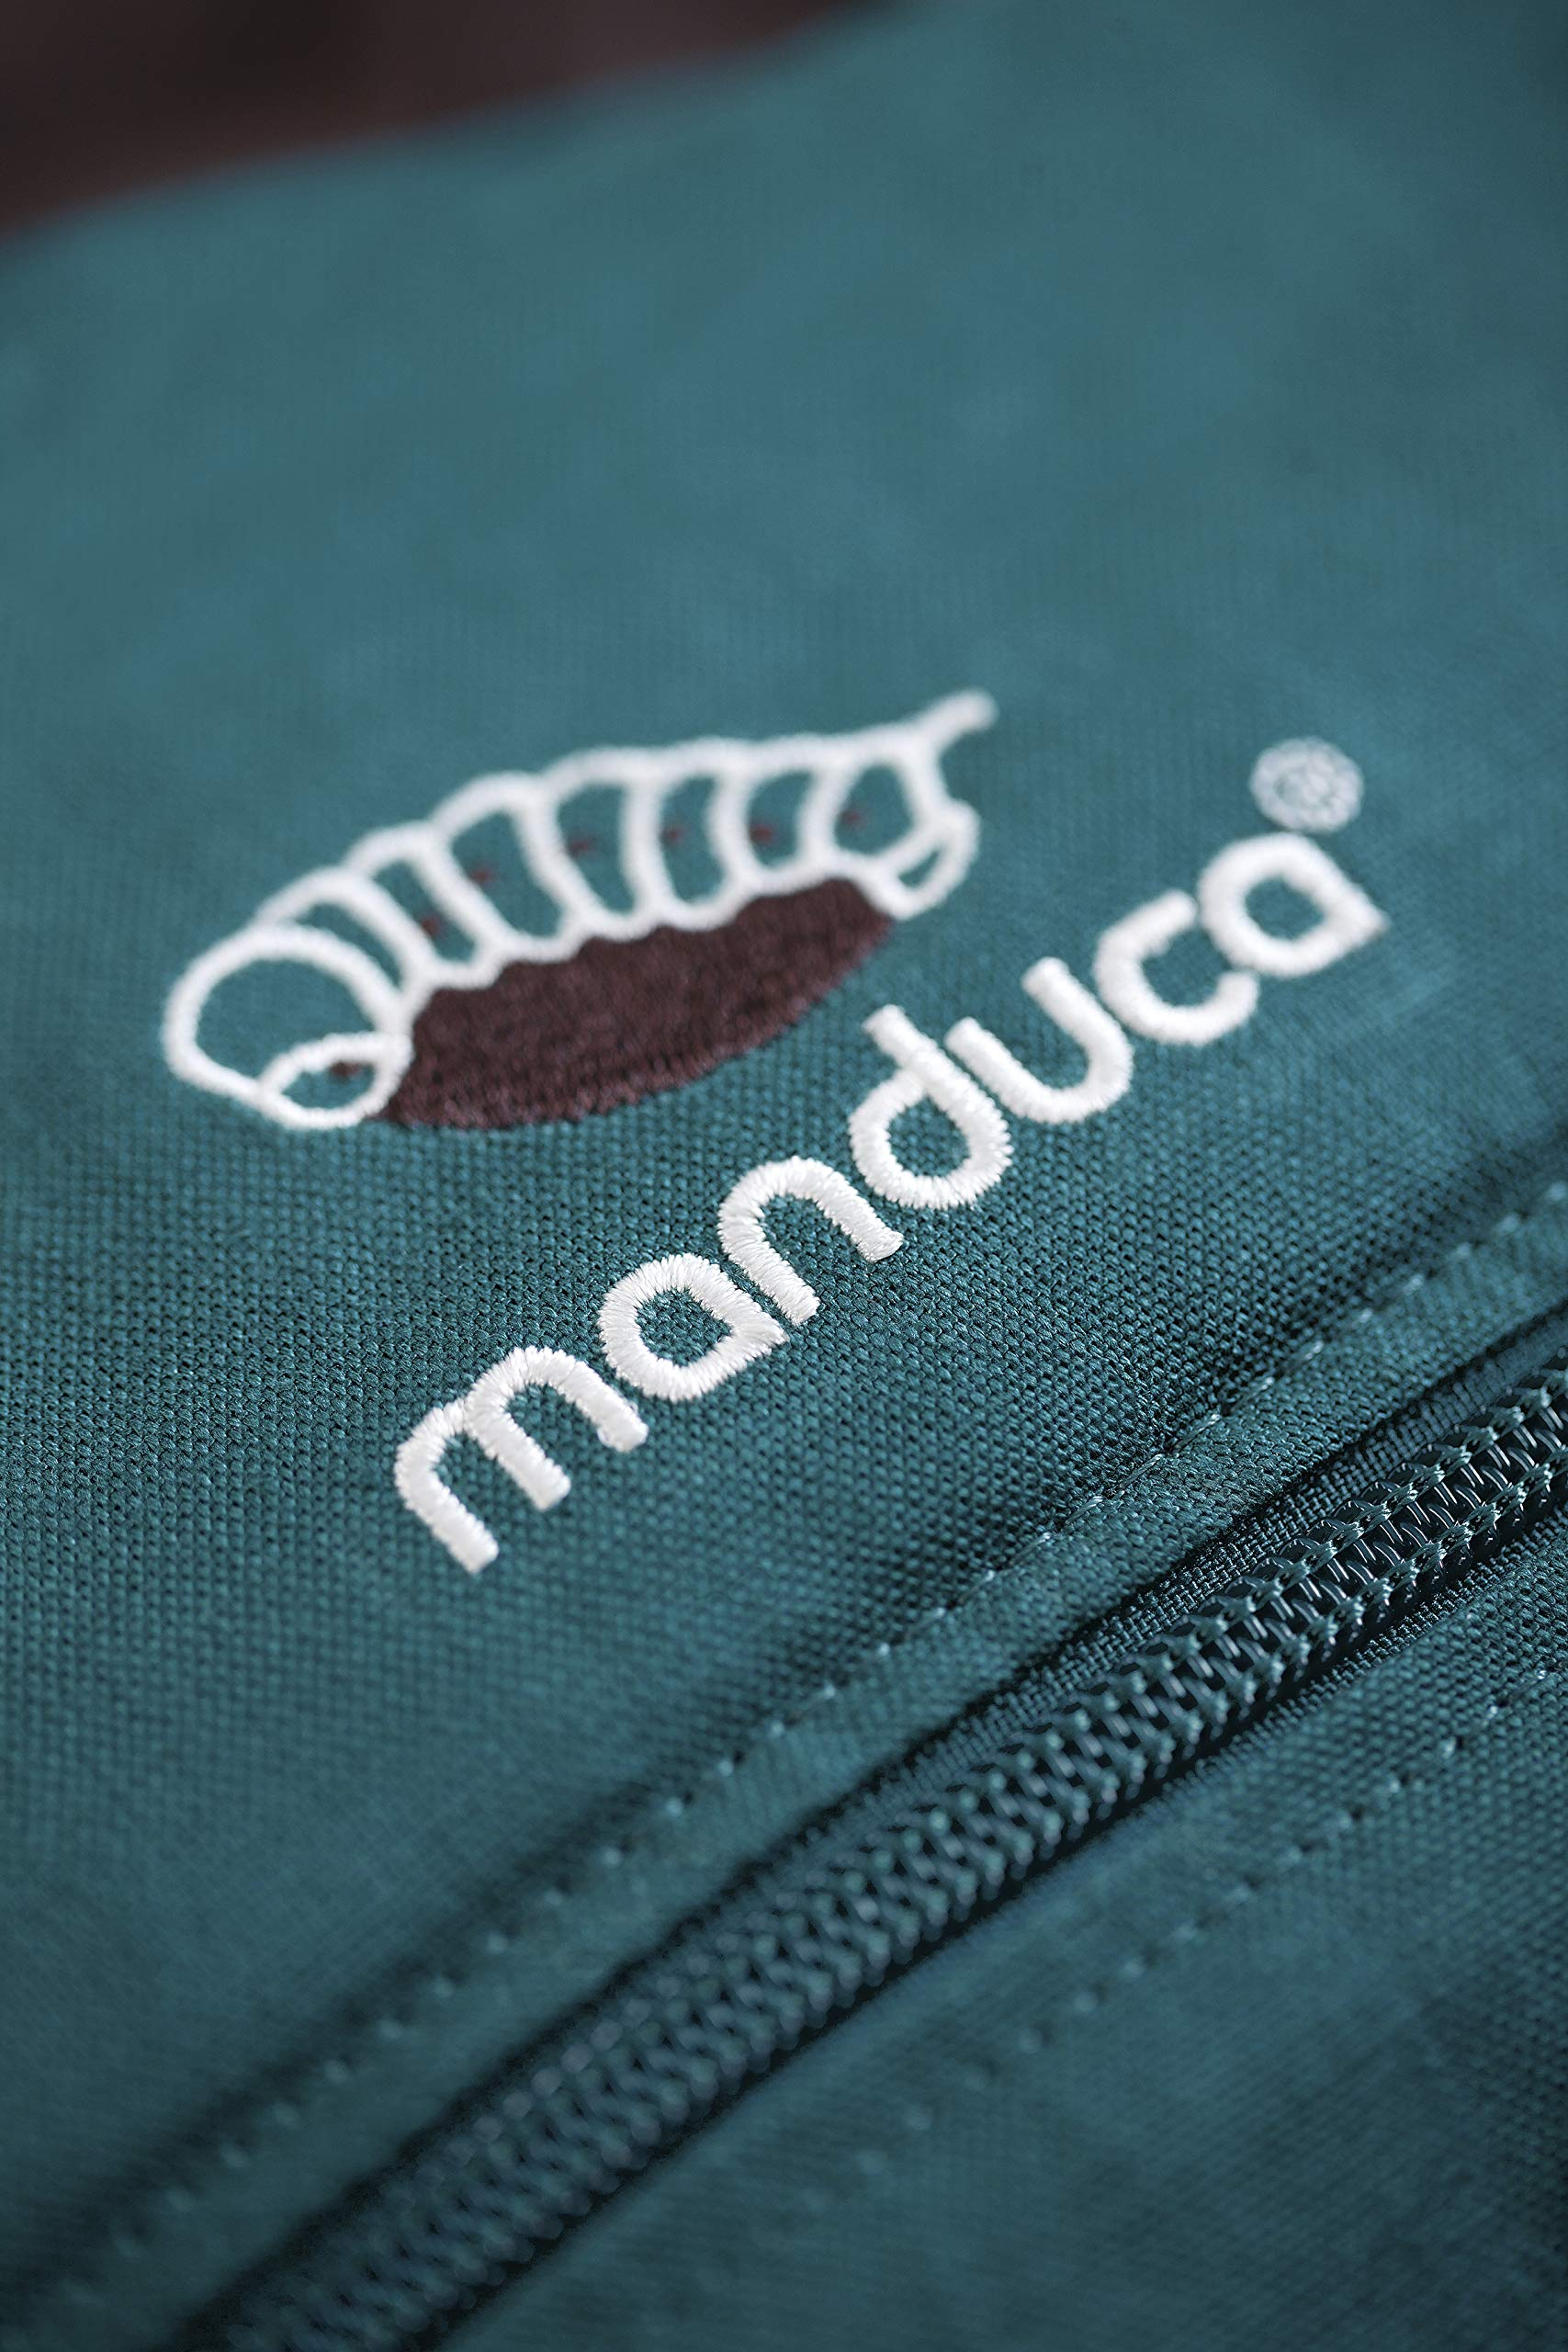 manduca First Baby Carrier > HempCotton Petrol Blue - Brown < Ergonomic Baby & Child Carrier, Soft & Sturdy Canvas (Organic Cotton & Hemp), Front, Hip & Back Carry, for Newborn to Toddlers up to 20kg Manduca manduca baby carrier First HempCotton: the original made of hemp & organic cotton with patented back extension, is already a classic. New features: Improved three-point-buckle (secure & easy to open) Integrated in every carrier: infant pouch (newborn insert), stowable headrest & sun protection for your baby, back extension (grows with your child); Optional accessories for newborns: Size-It (seat reducer) and Zip-In Ellipse Ergonomic design for men & women: Soft padded shoulder straps (multiple adjustable) & the anatomically shaped stable hipbelt (fits hips from 64cm to 140cm) ensure balanced weight distribution. No waist-belt extension needed 5